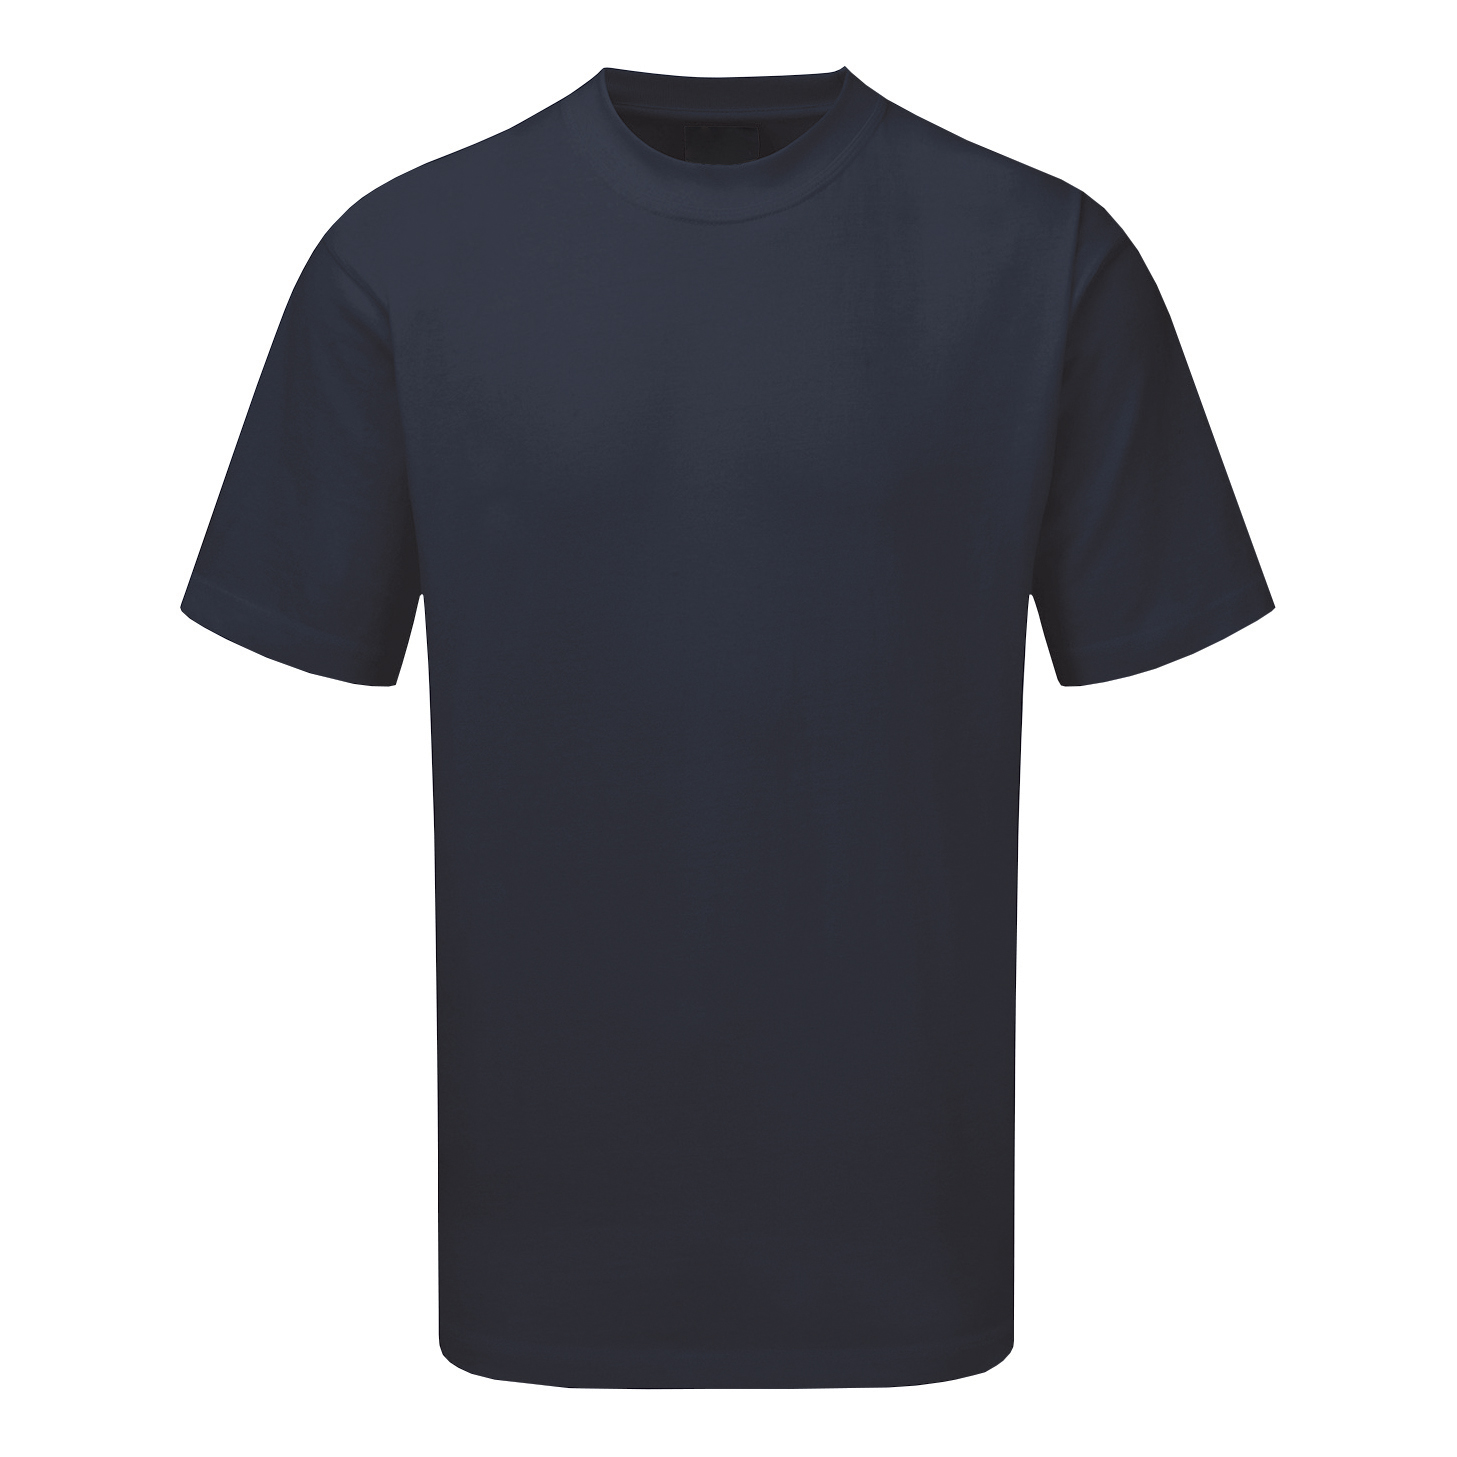 Premium T-Shirt Polycotton Triple Stitched Size 5XL Navy Ref CLCTSHWN5XL *Approx 3 Day Leadtime*